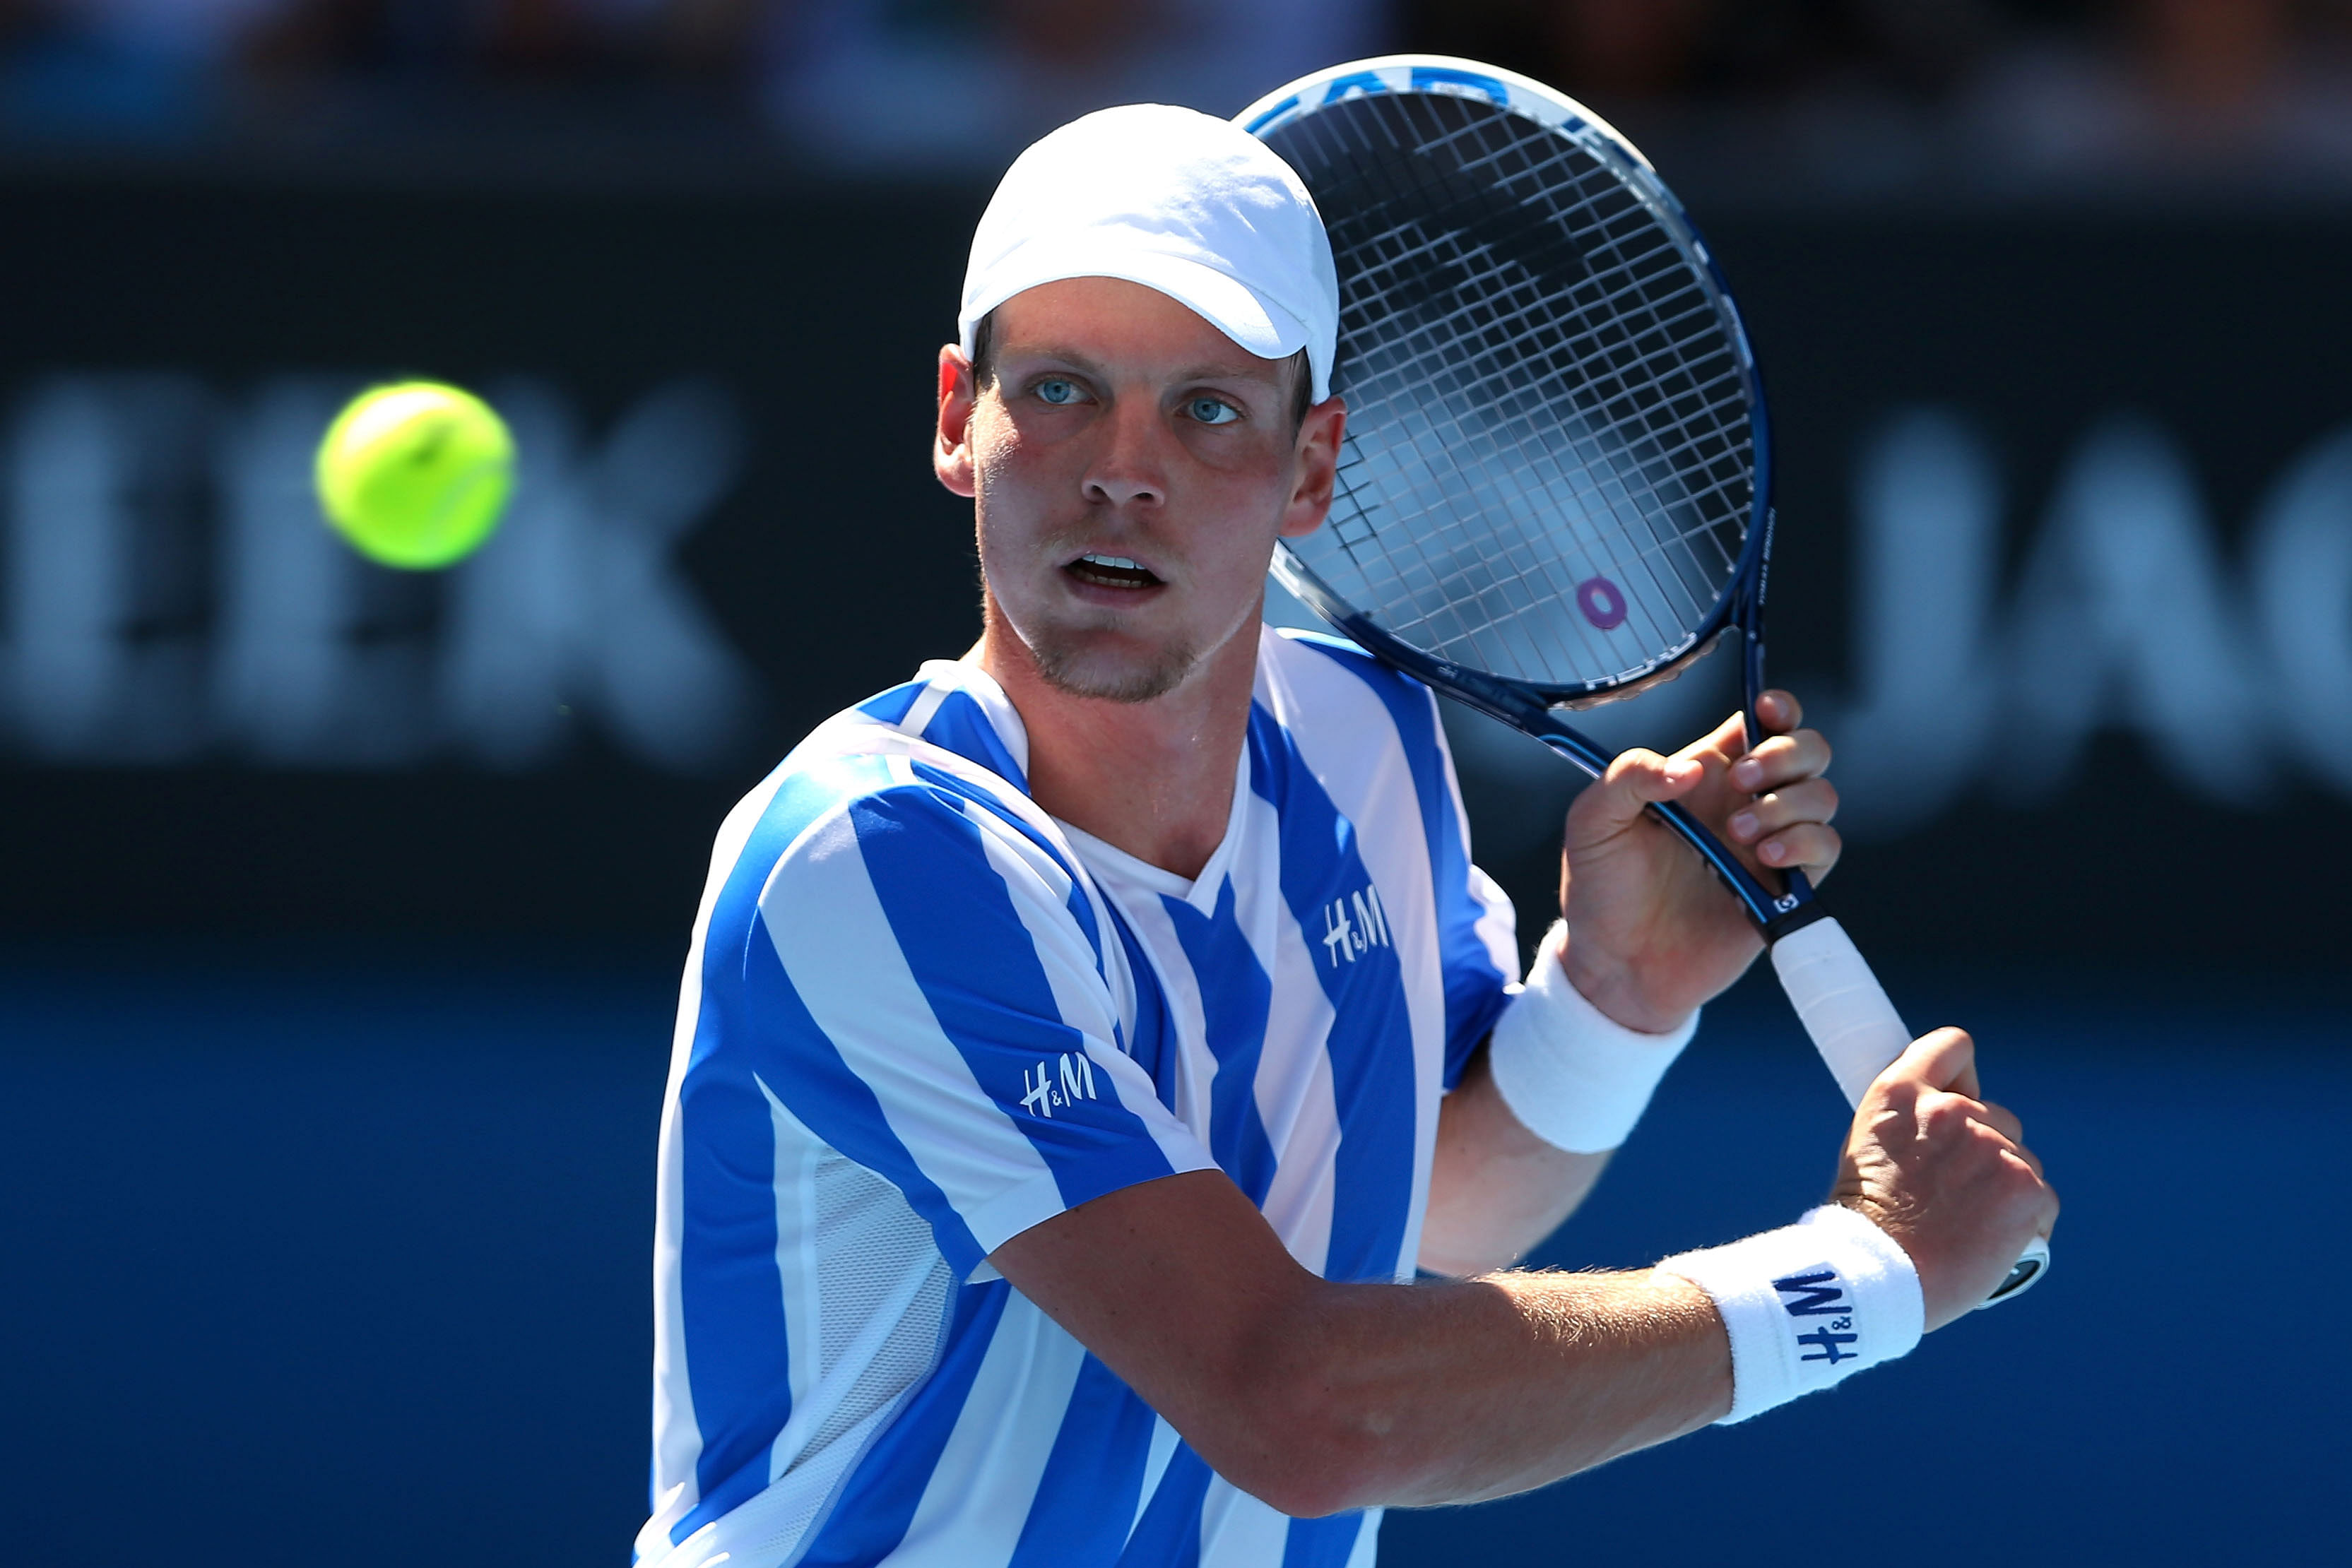 Tomas Berdych announces new coaching team for 2015